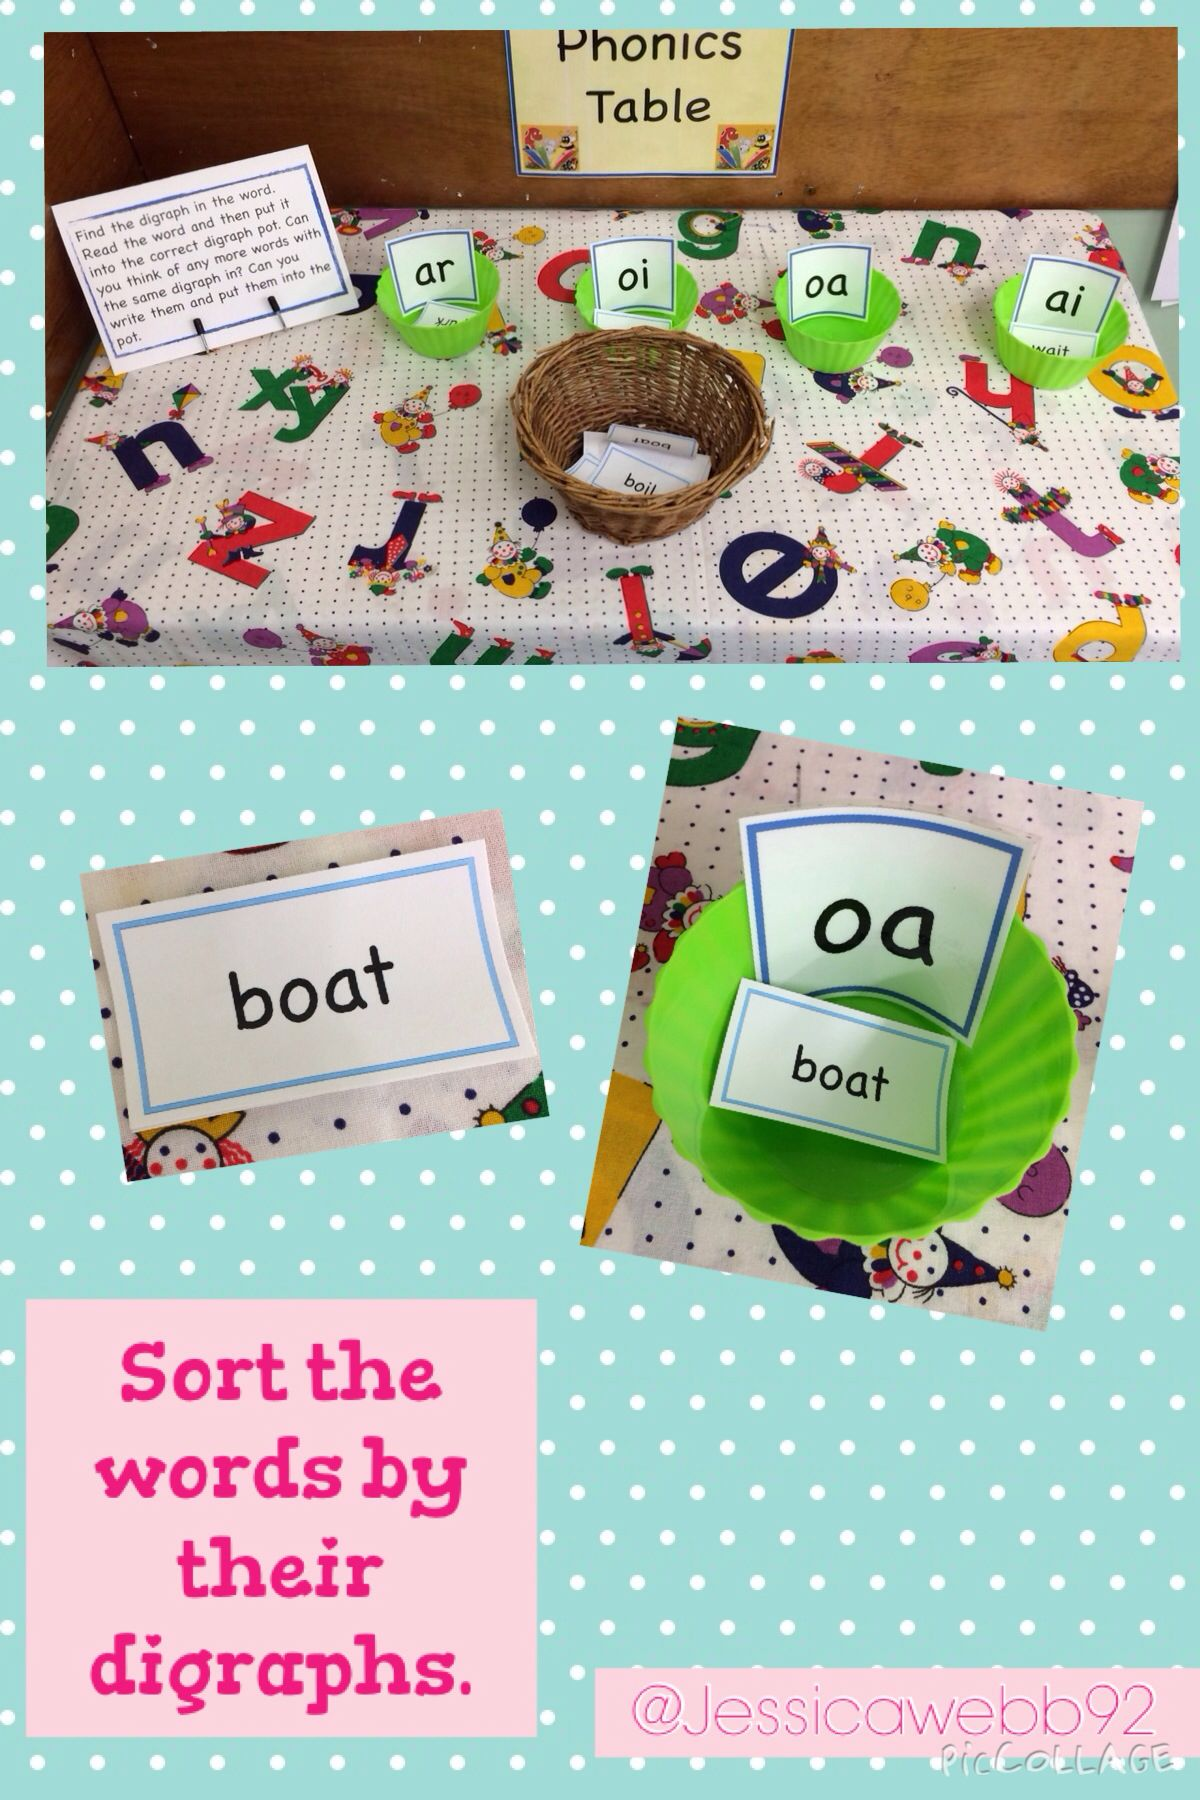 Read The Word And Sort It Into The Correct Digraph Pot